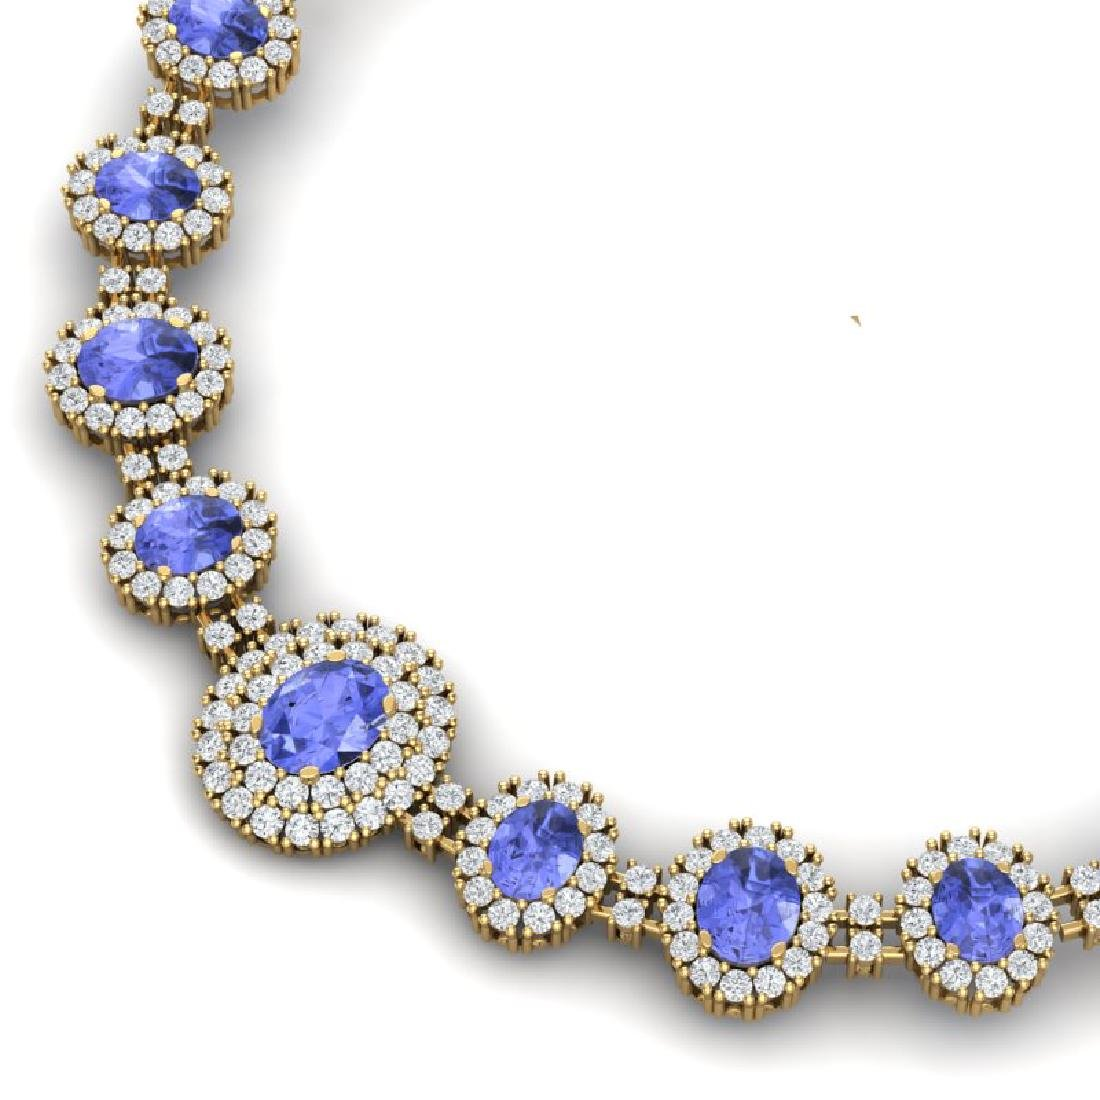 46.51 CTW Royalty Tanzanite & VS Diamond Necklace 18K - 2